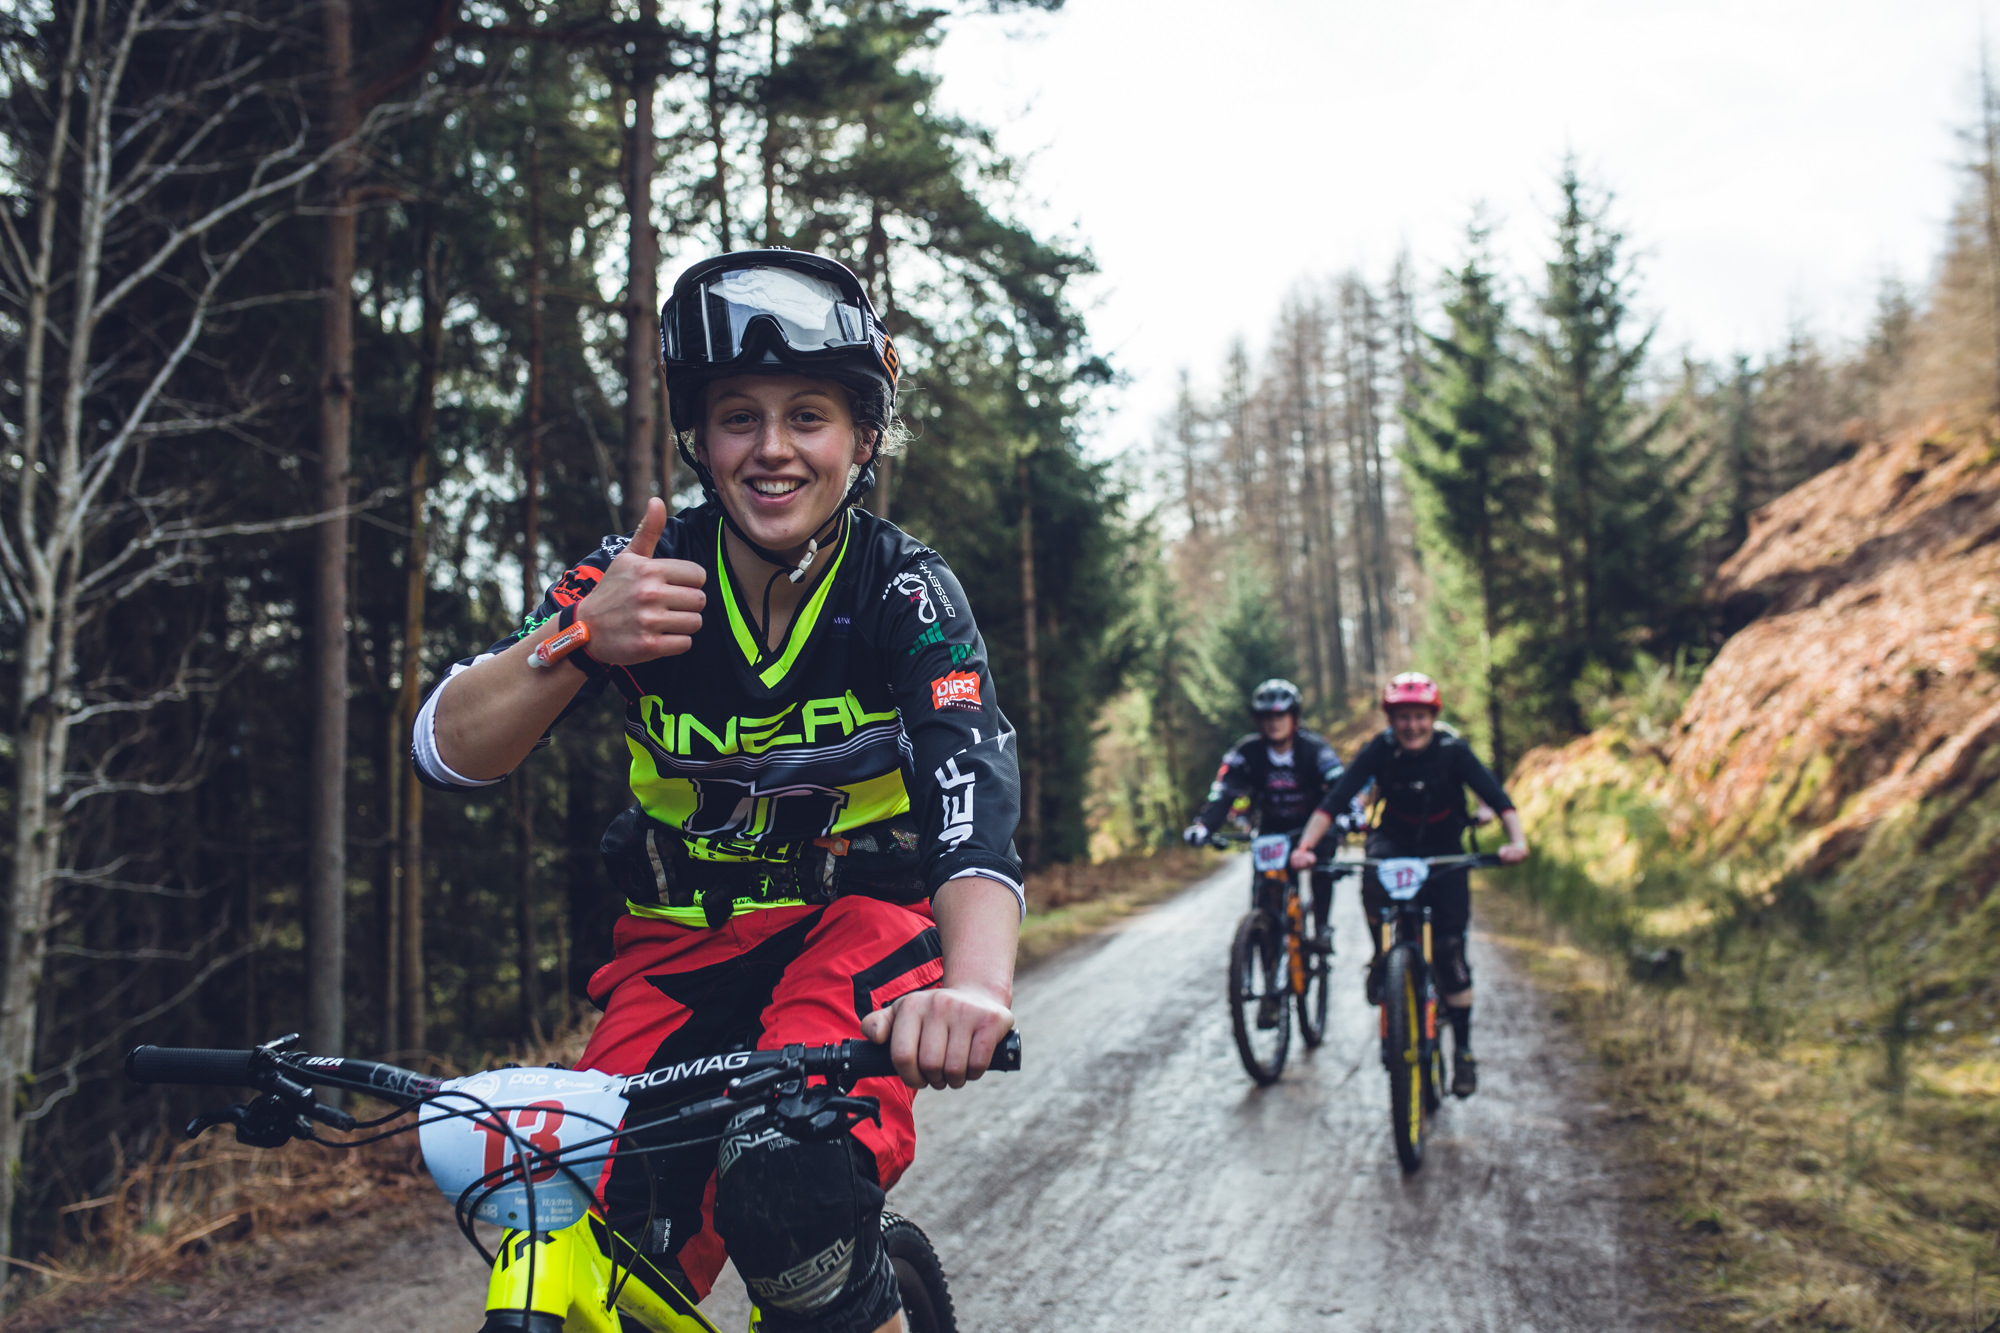 Interview: Bex Baraona – Mixing it up at the top | ENDURO ...